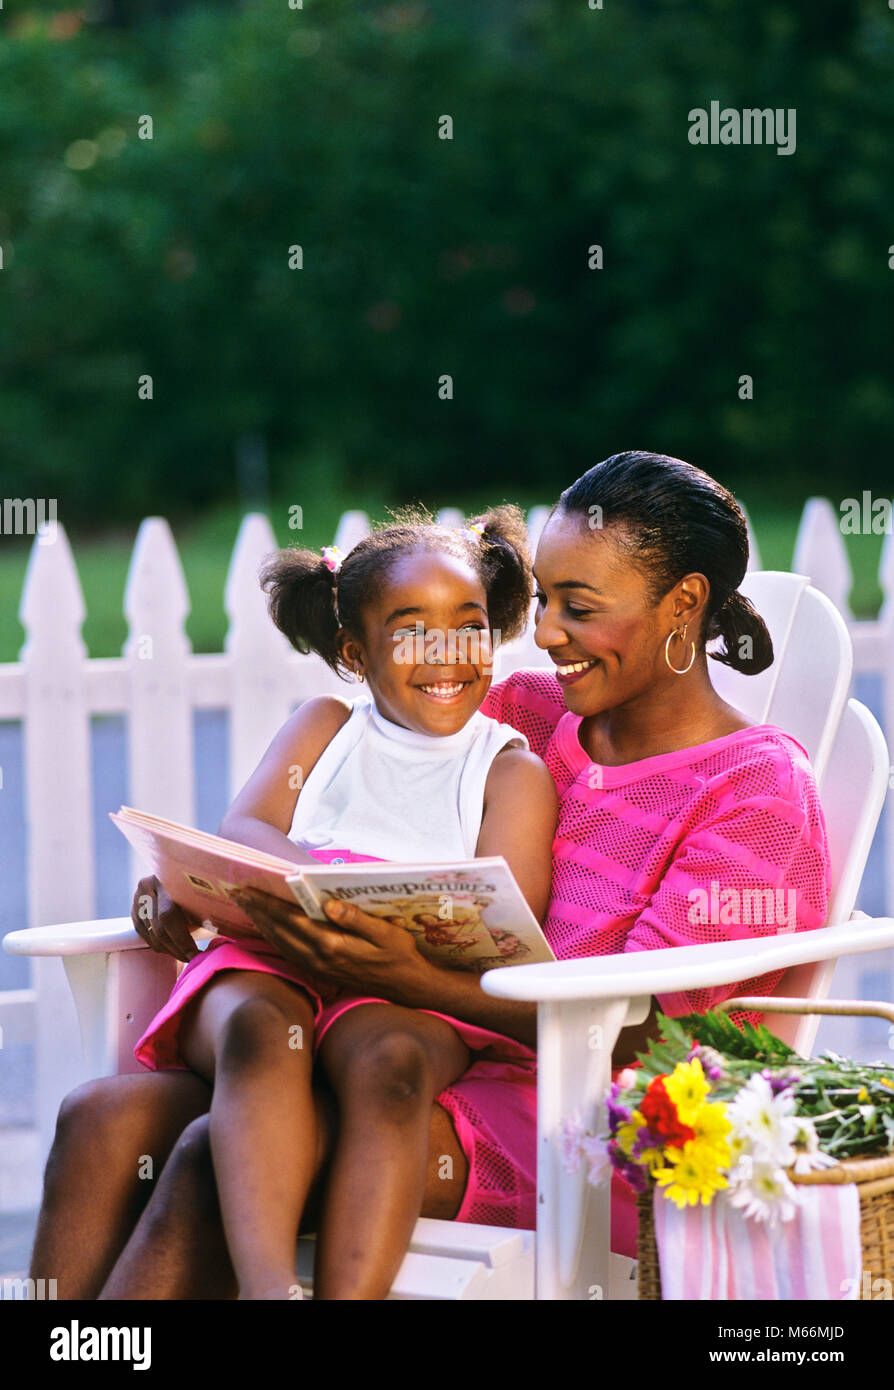 1990s MOTHER SITTING ON WHITE LAWN CHAIR WITH DAUGHTER ON HER LAP WITH BOOK - kj12900 LAF002 HARS NOSTALGIC BEAUTY - Stock Image